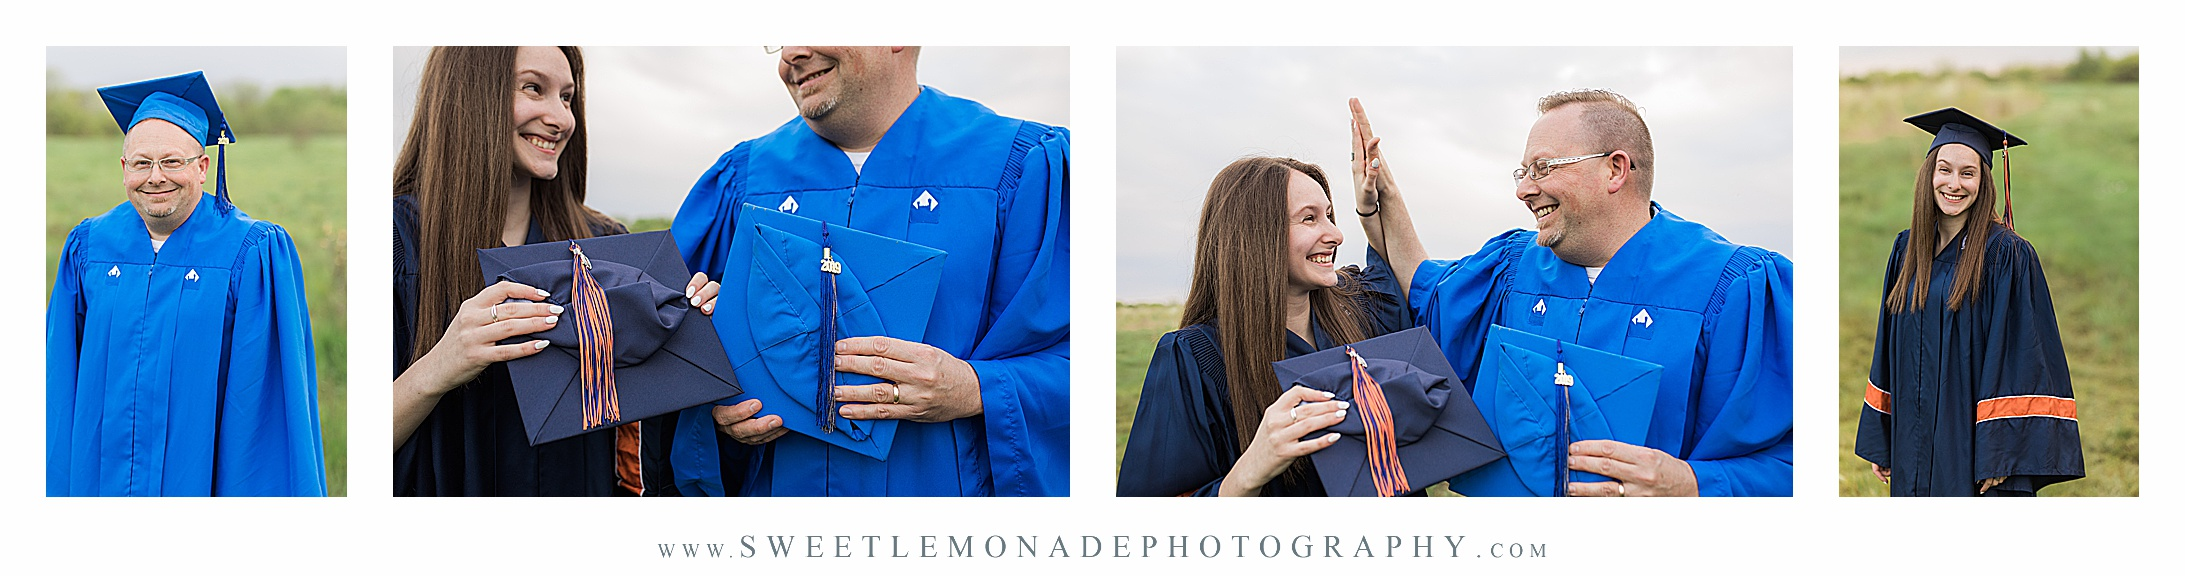 disney-mickey-ears-graduation-cap-pictures-mahomet-illinois-sweet-lemonade-photography_2436.jpg